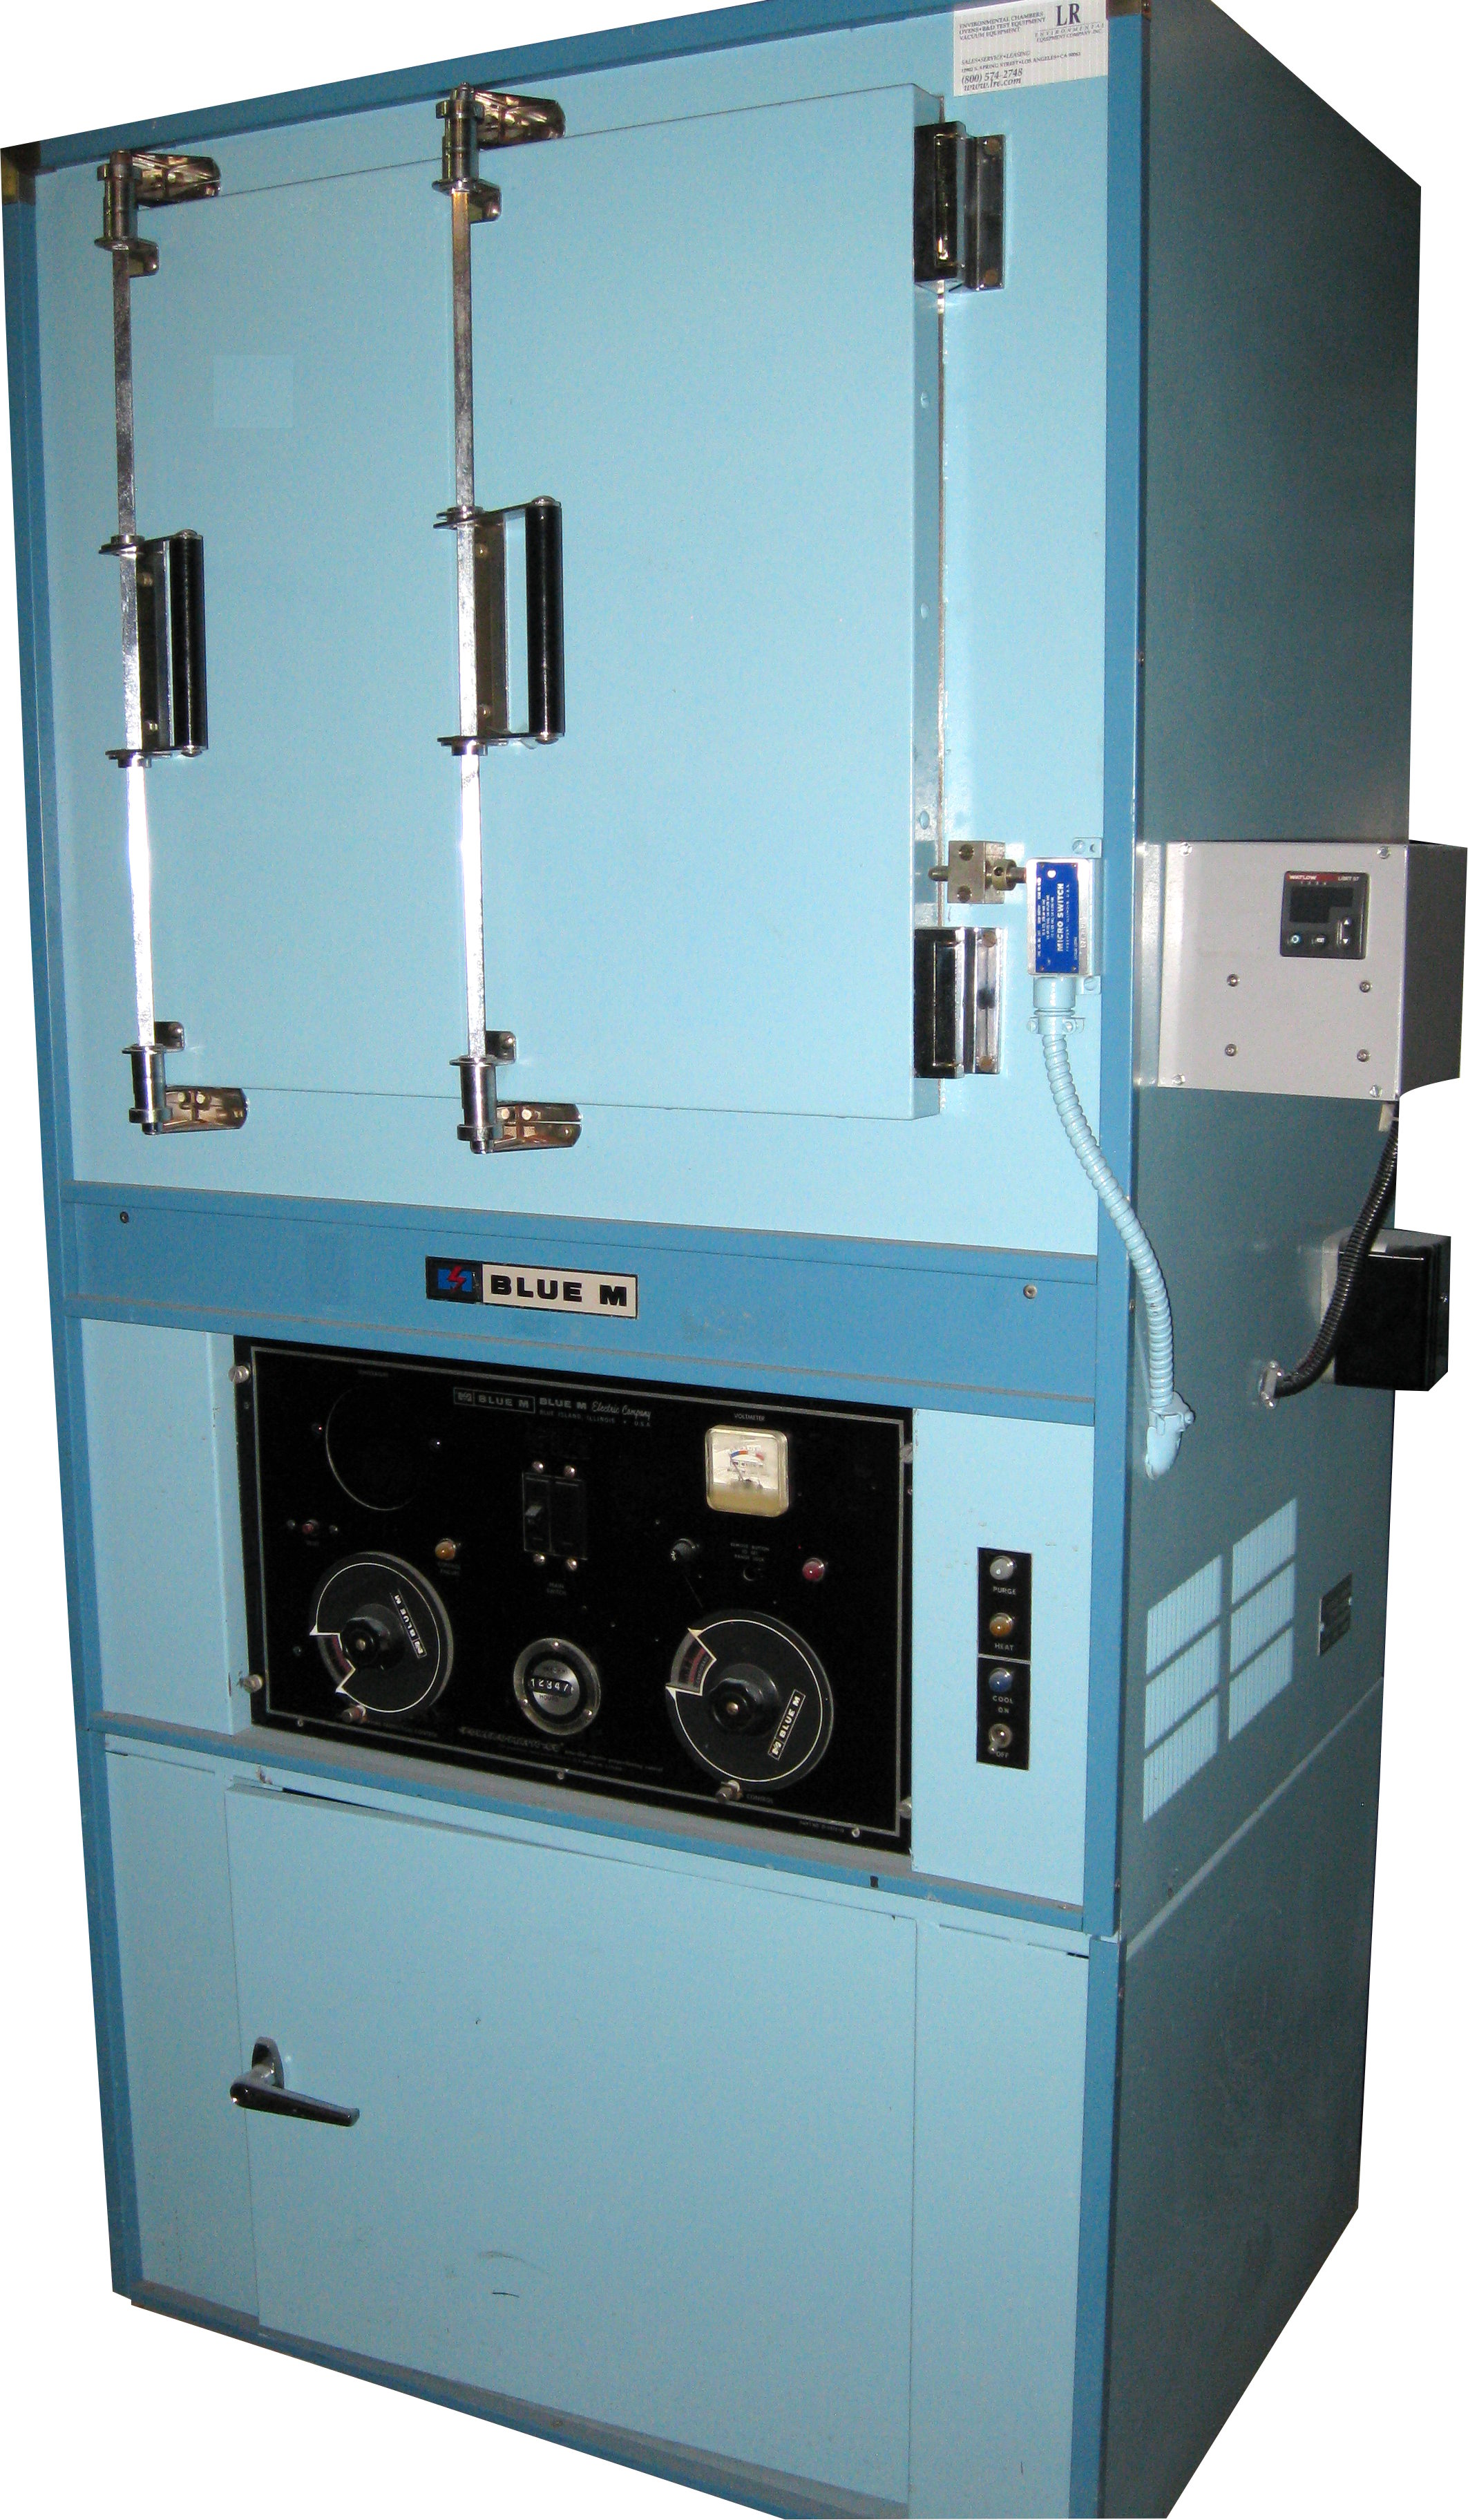 Used BLUE M AGC206B-3 Industrial Ovens/ Laboratory Ovens/ Inert Gas Ovens